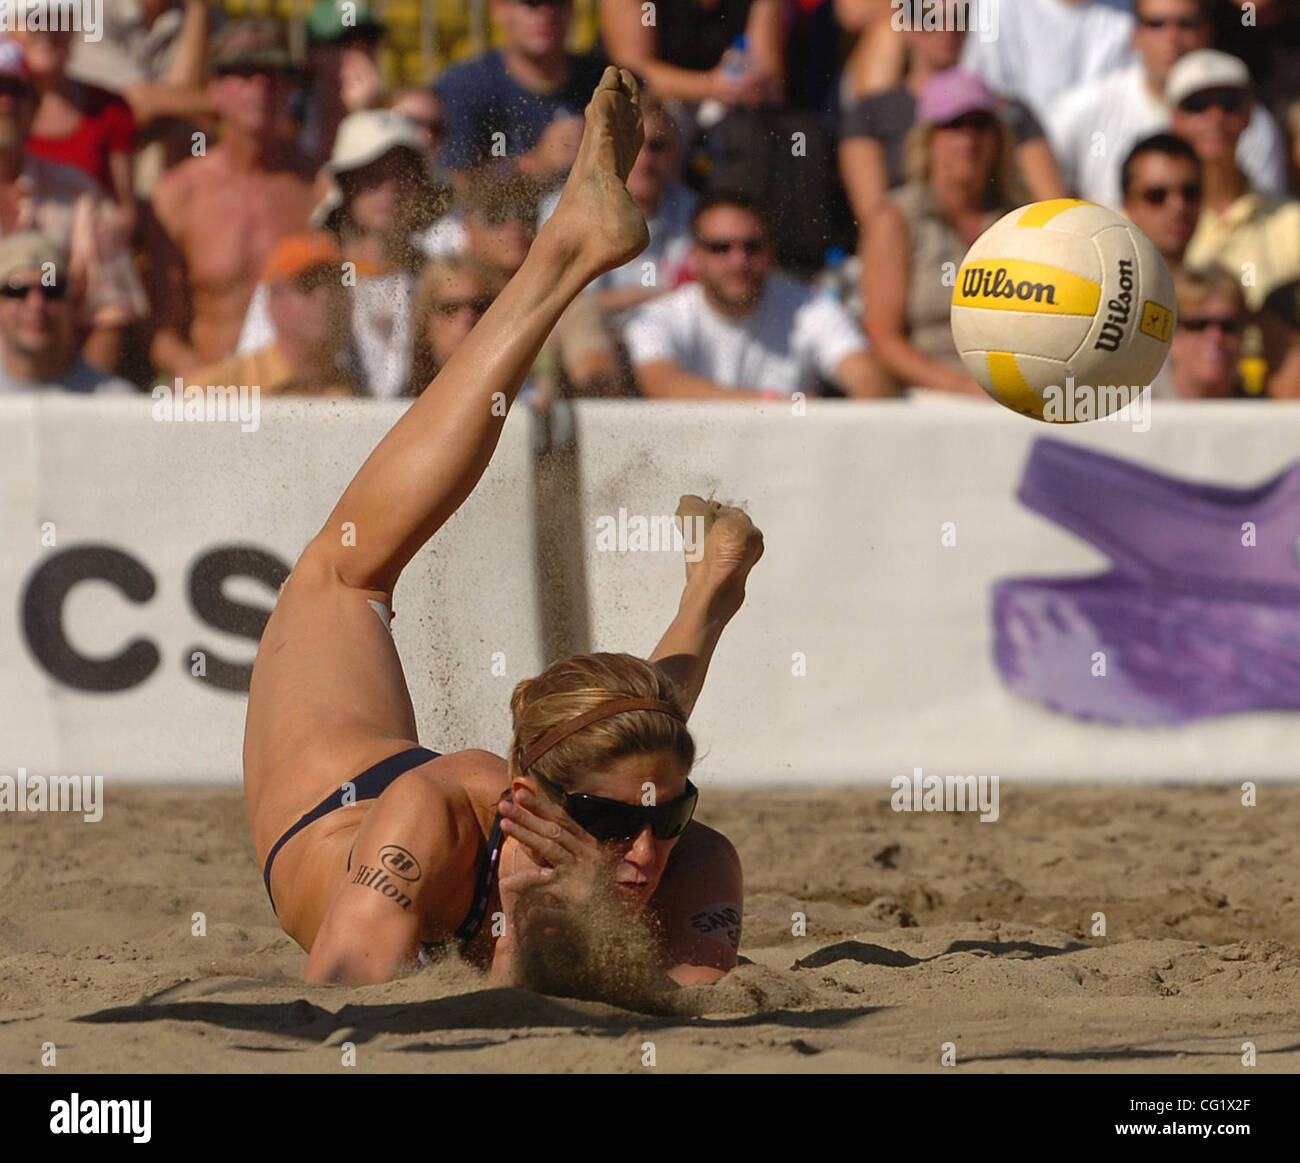 Nicole Branagh dives for a shot in the Women's Final match during the 2007 AVP Crocs Tour San Francisco Best - Stock Image